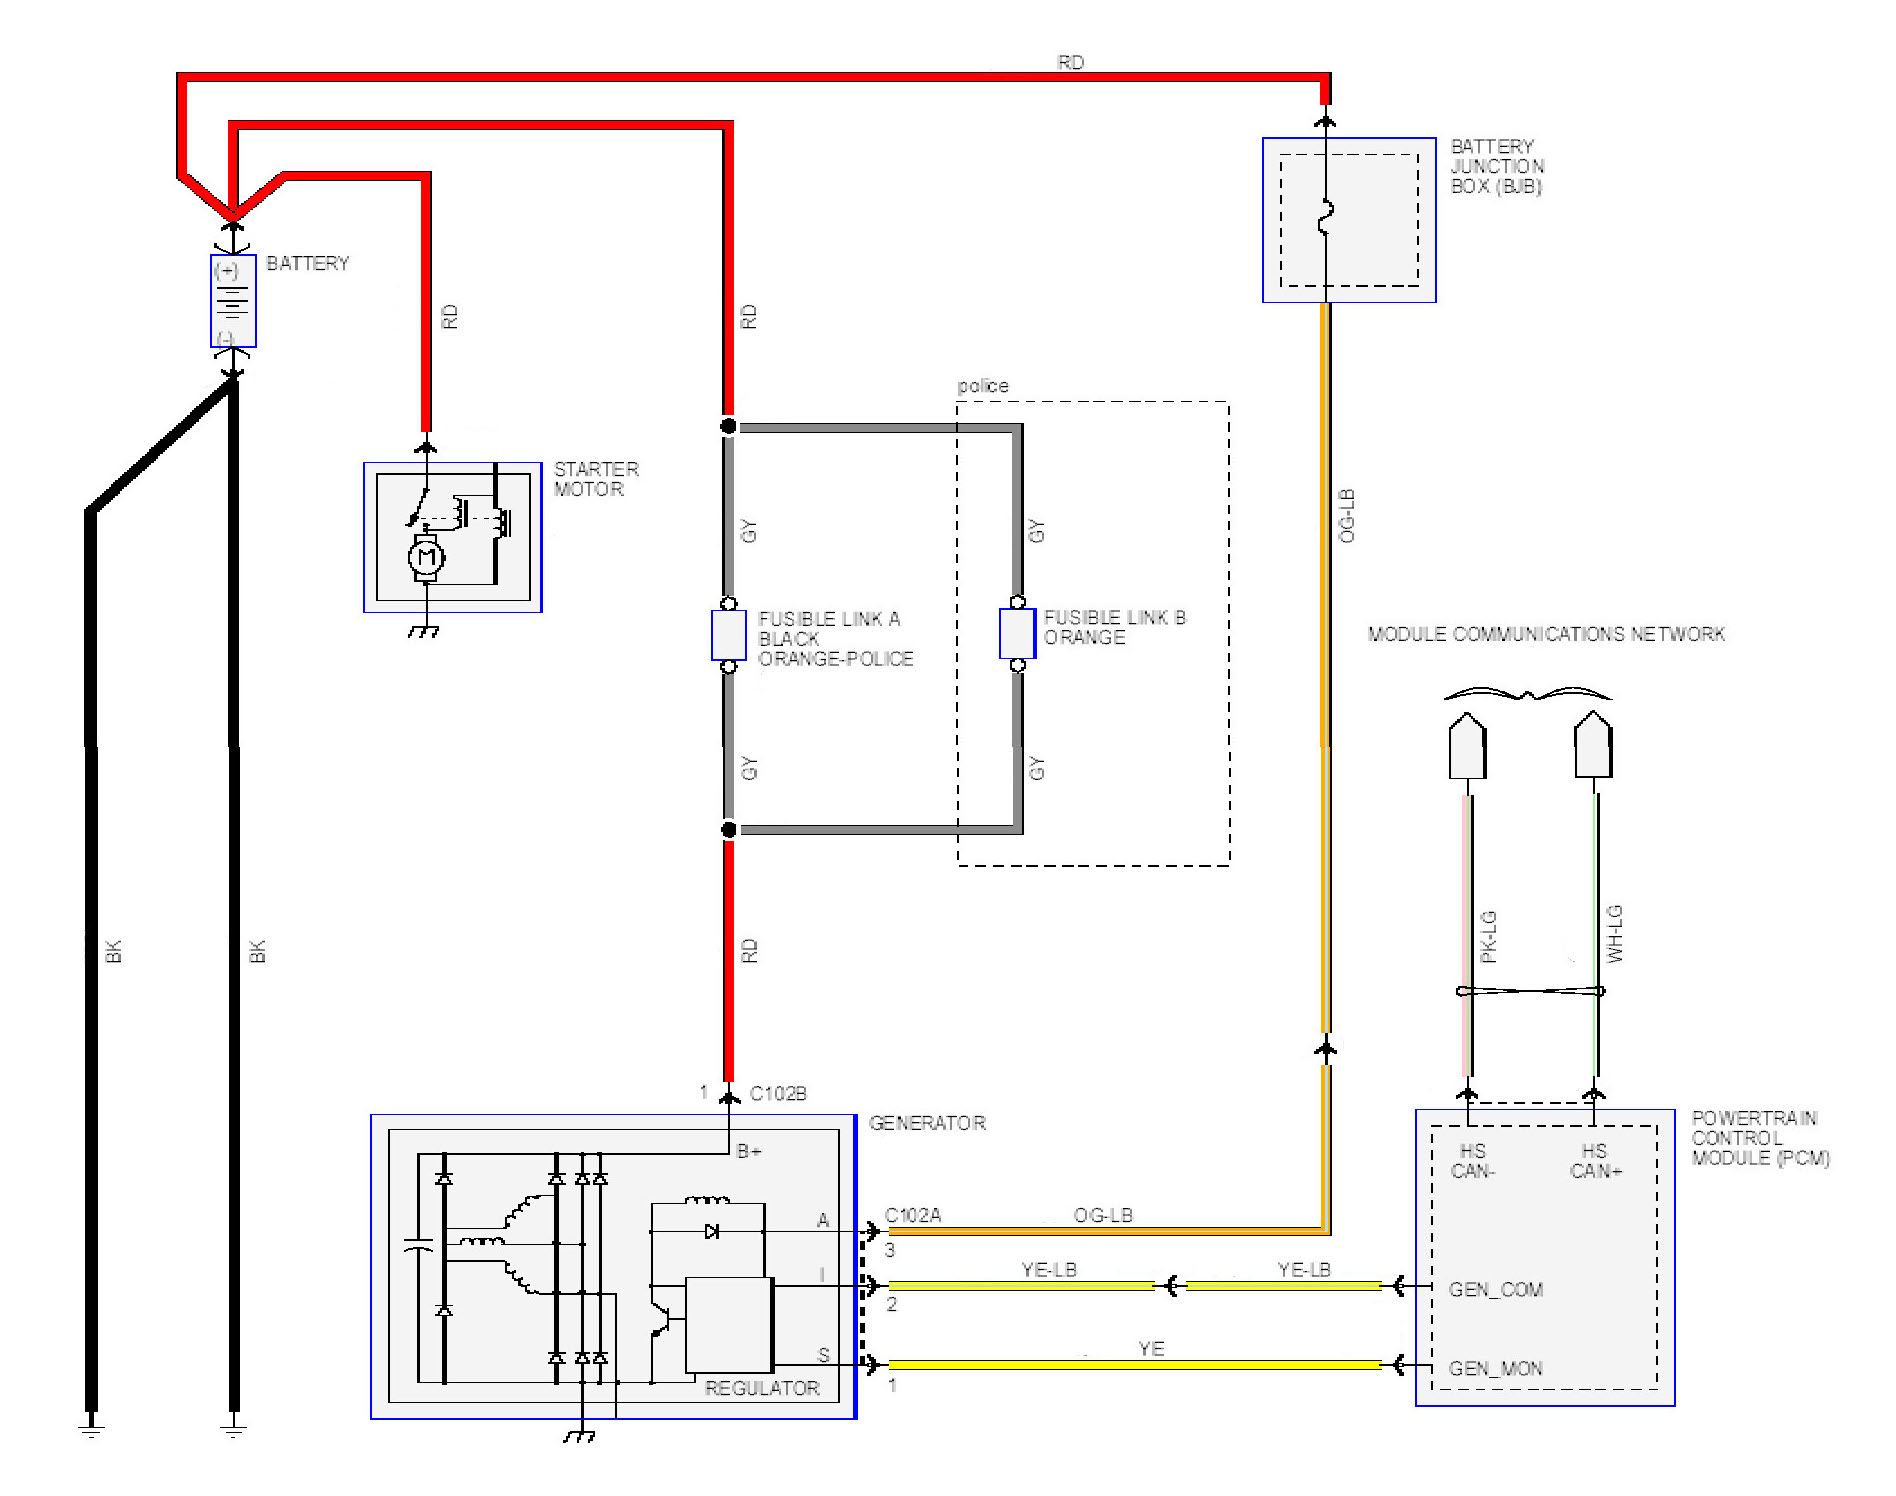 dodge police interceptor wiring diagrams 2013 ford taurus interceptor wiring diagrams #13